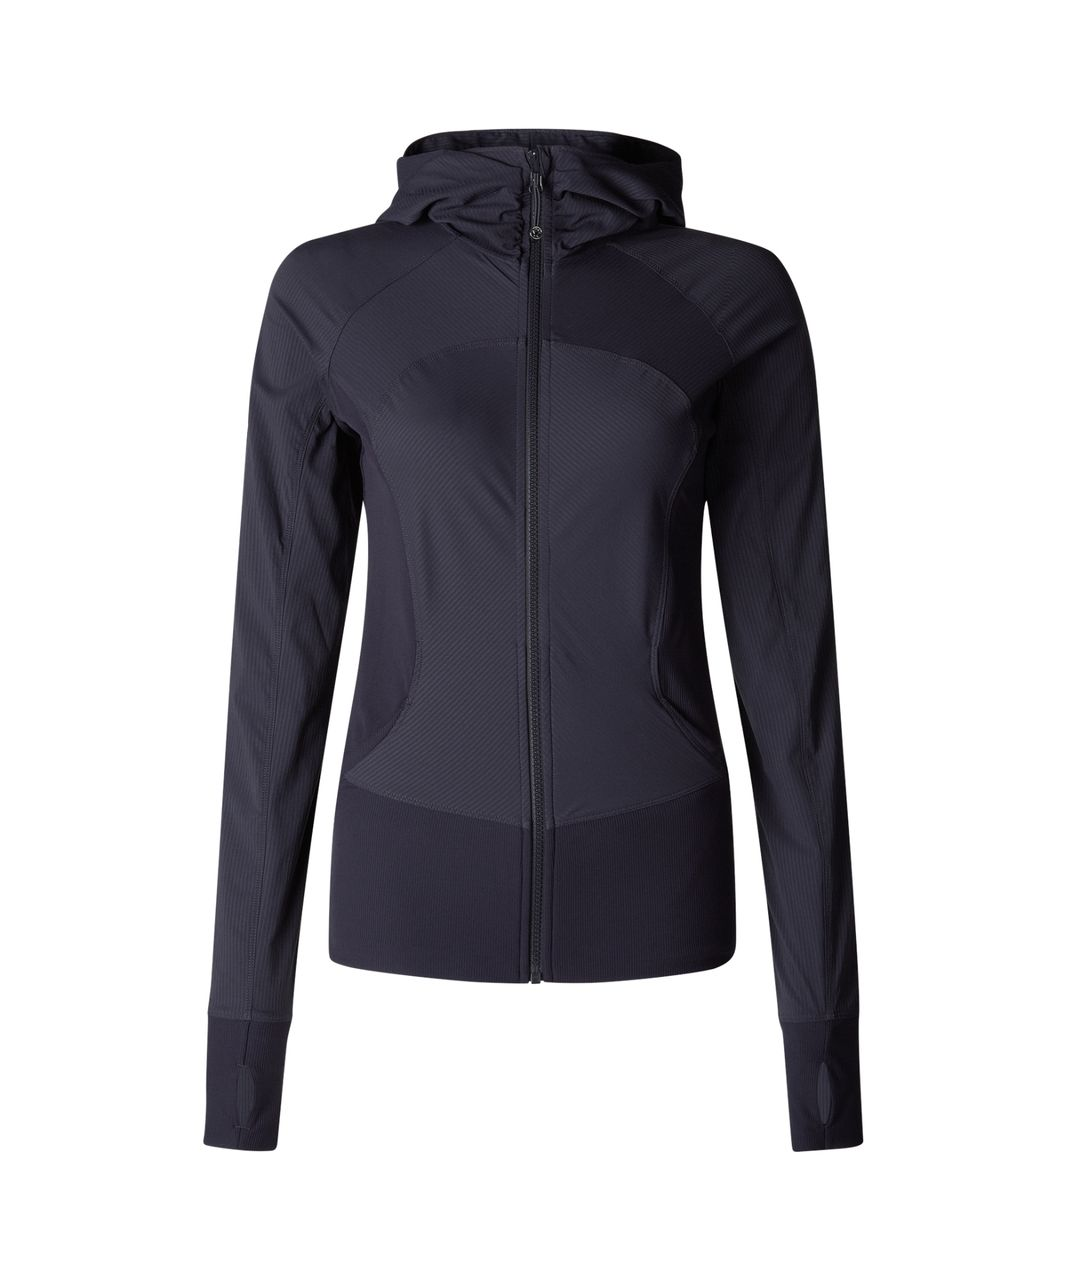 Lululemon In Flux Jacket - Black Grape